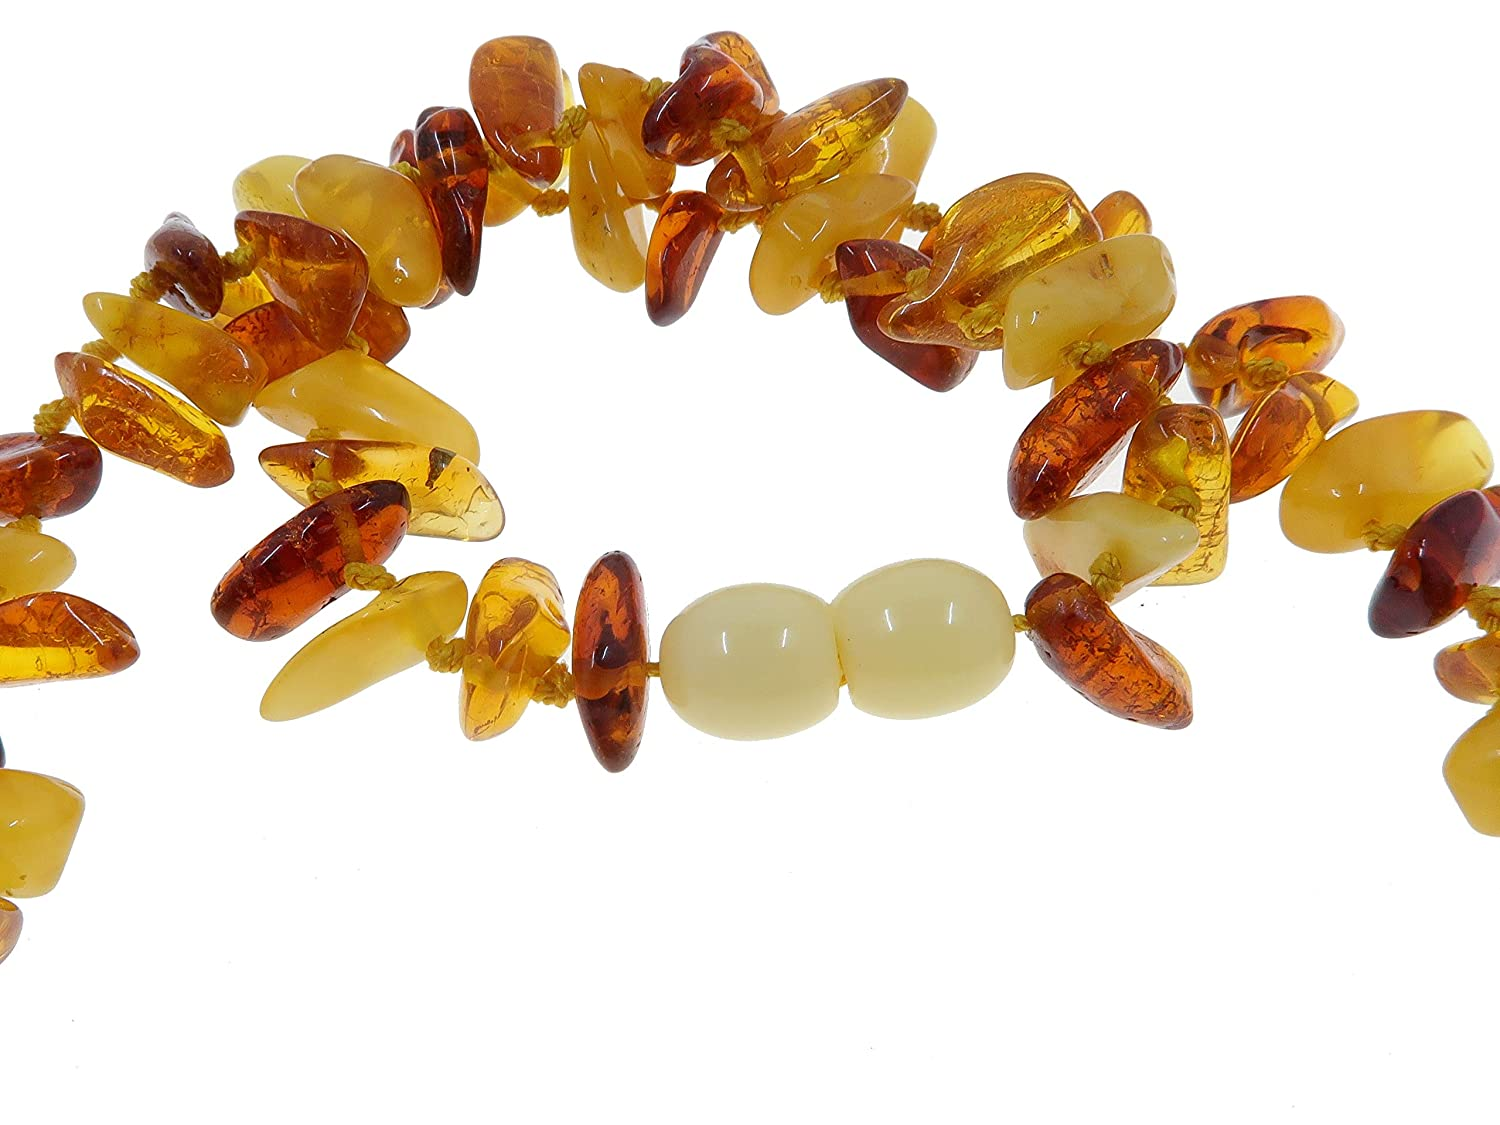 22 Amber Necklace Boutique Multi-Colored Yellow Orange Red Authentic Baltic Gemstone Knotted Lithuanian B09